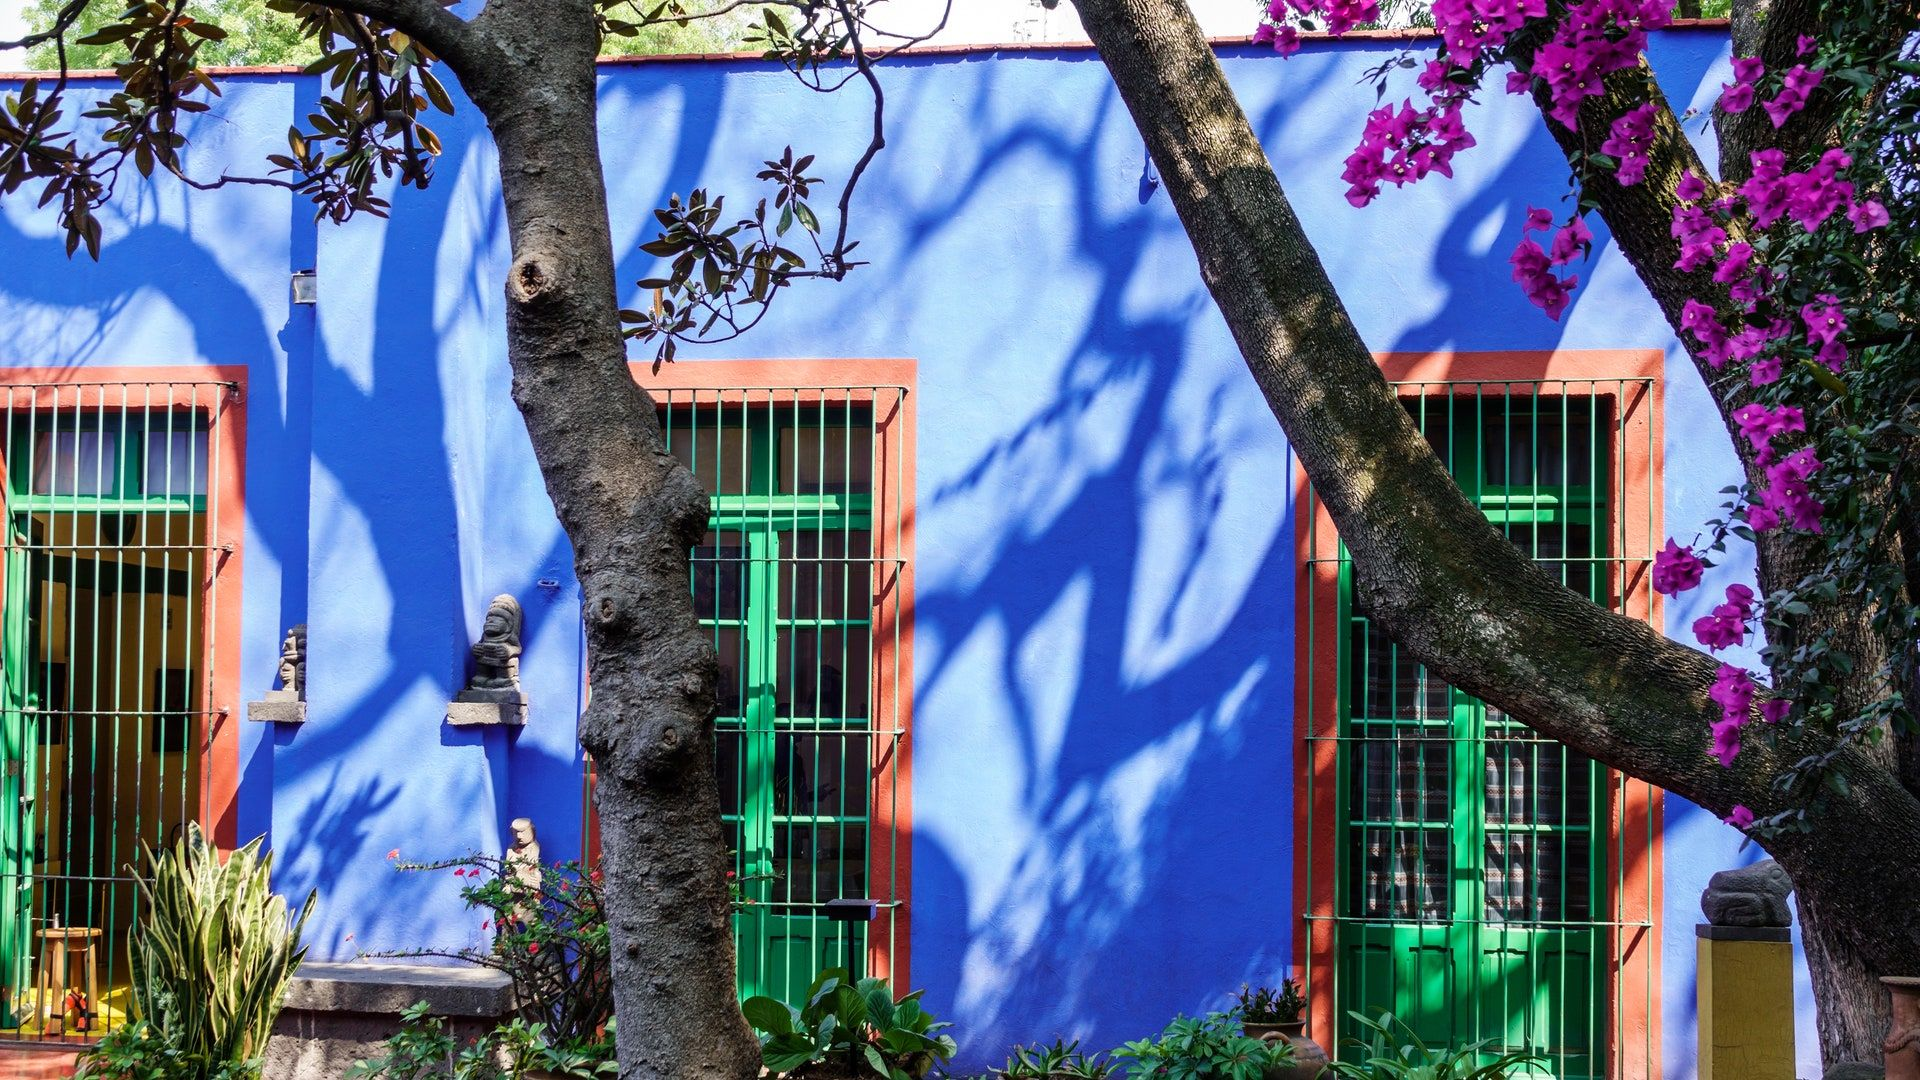 Take A Virtual Tour Of La Casa Azul The Frida Kahlo Museum In